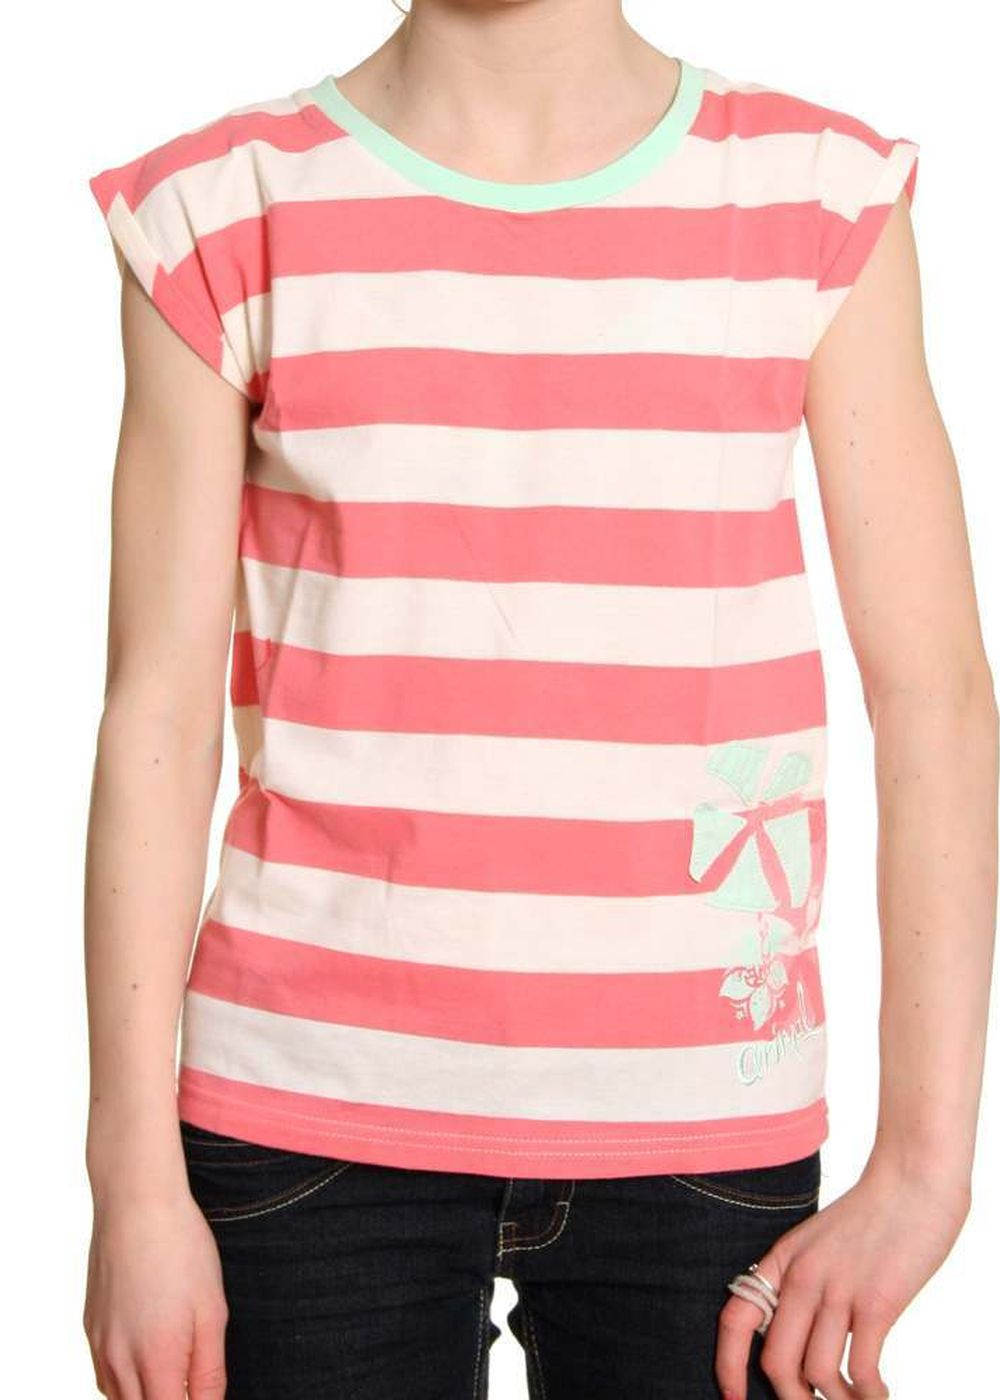 ANIMAL GIRLS DESILVER DELUXE TEE Sunkist Coral